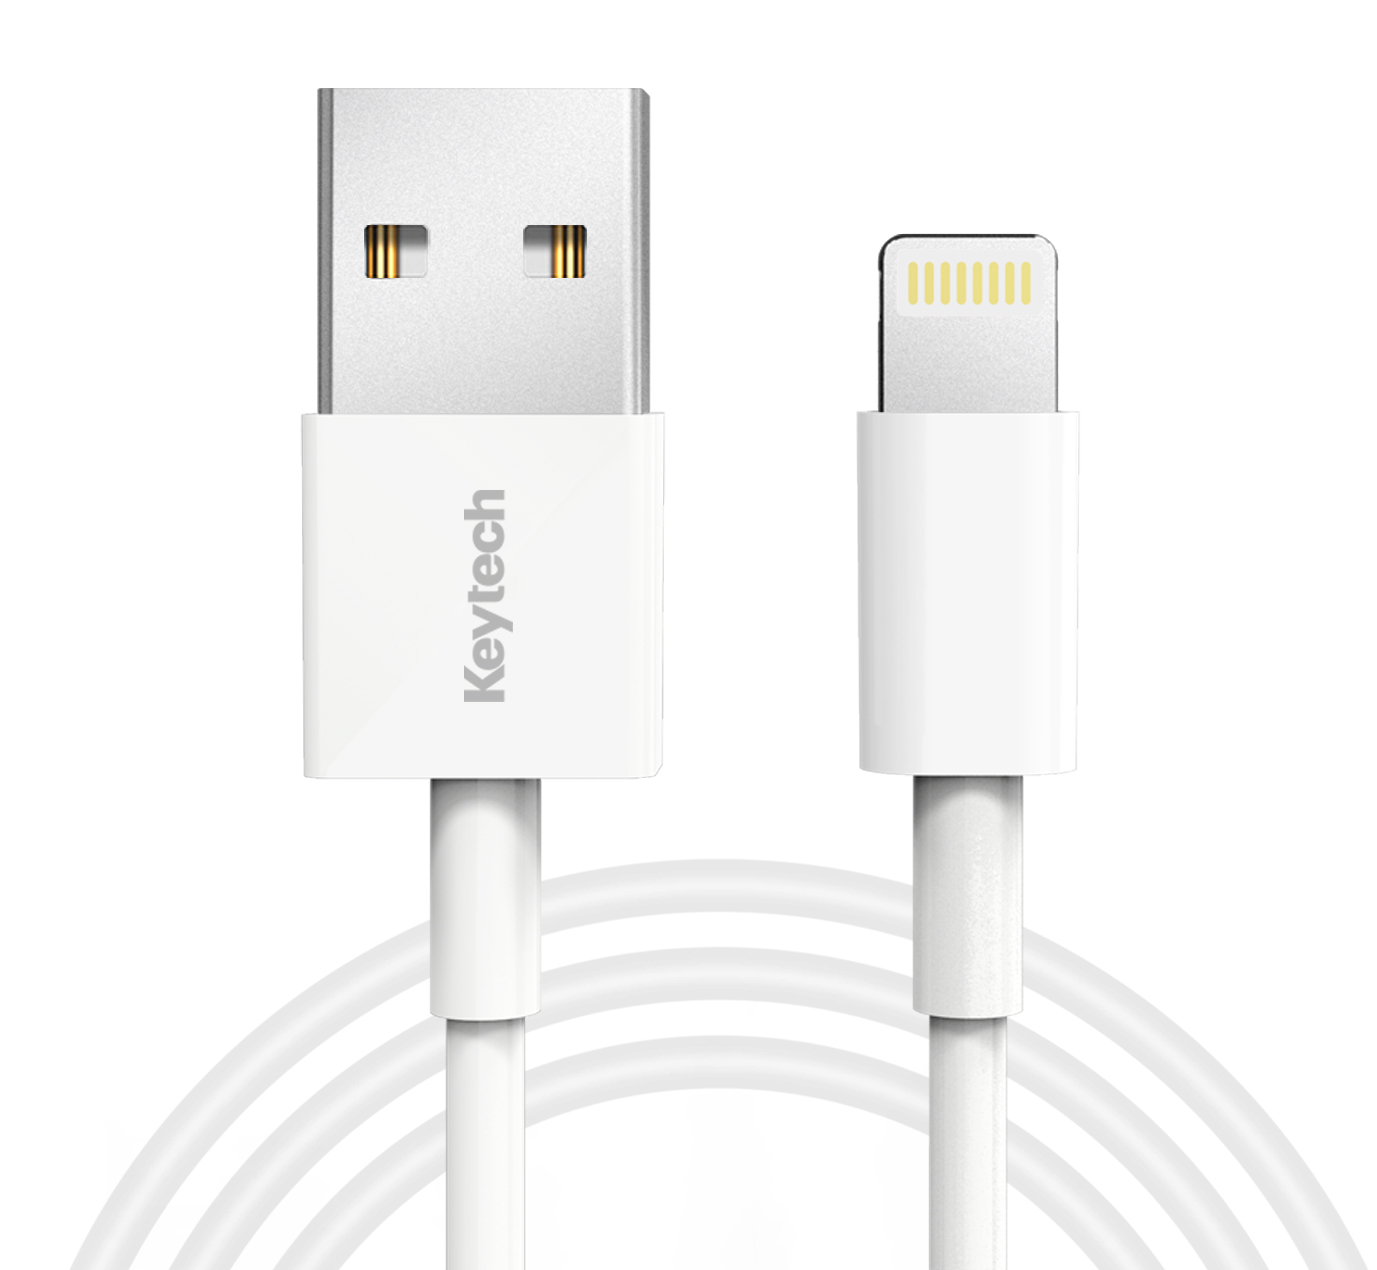 KAL002 Original für iPhone USB Cable Charging Data Sync Line mit 2A Fast Charging Funktion